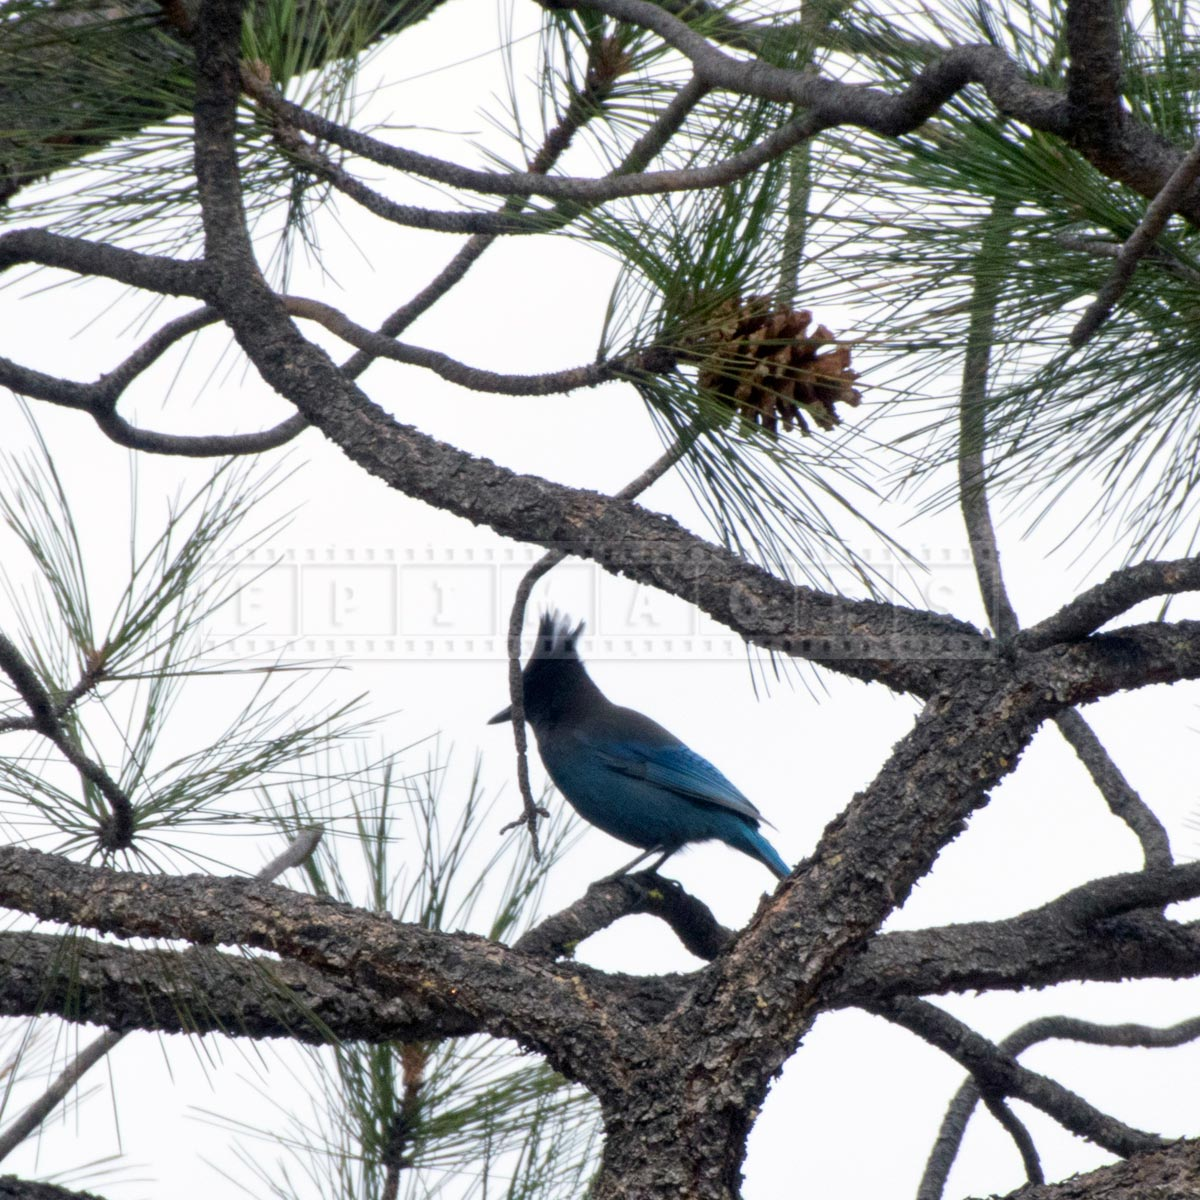 Wild blue bird - Pinyon Jay sitting on the pine